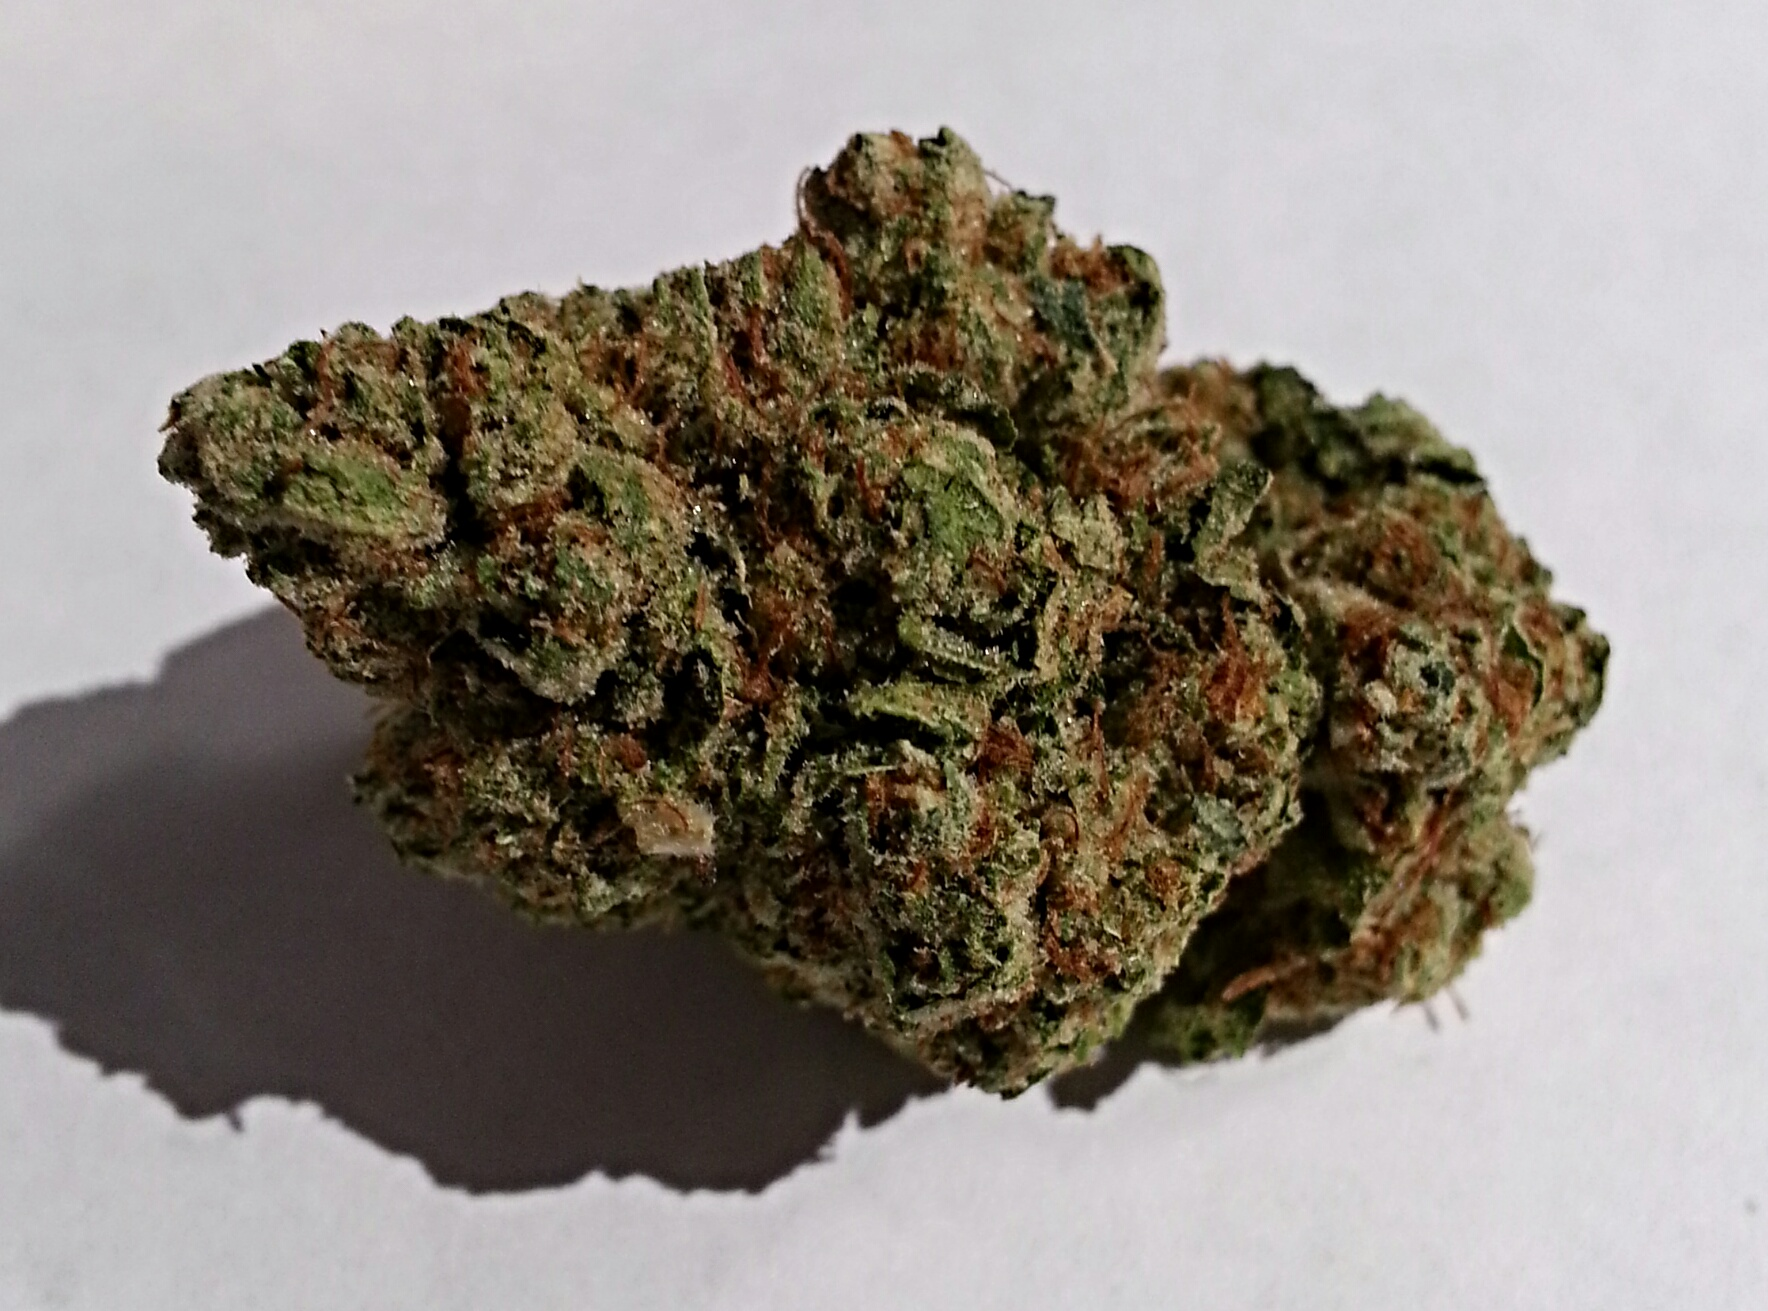 Dank Depot from Dank Depot Medical Marijuana Review